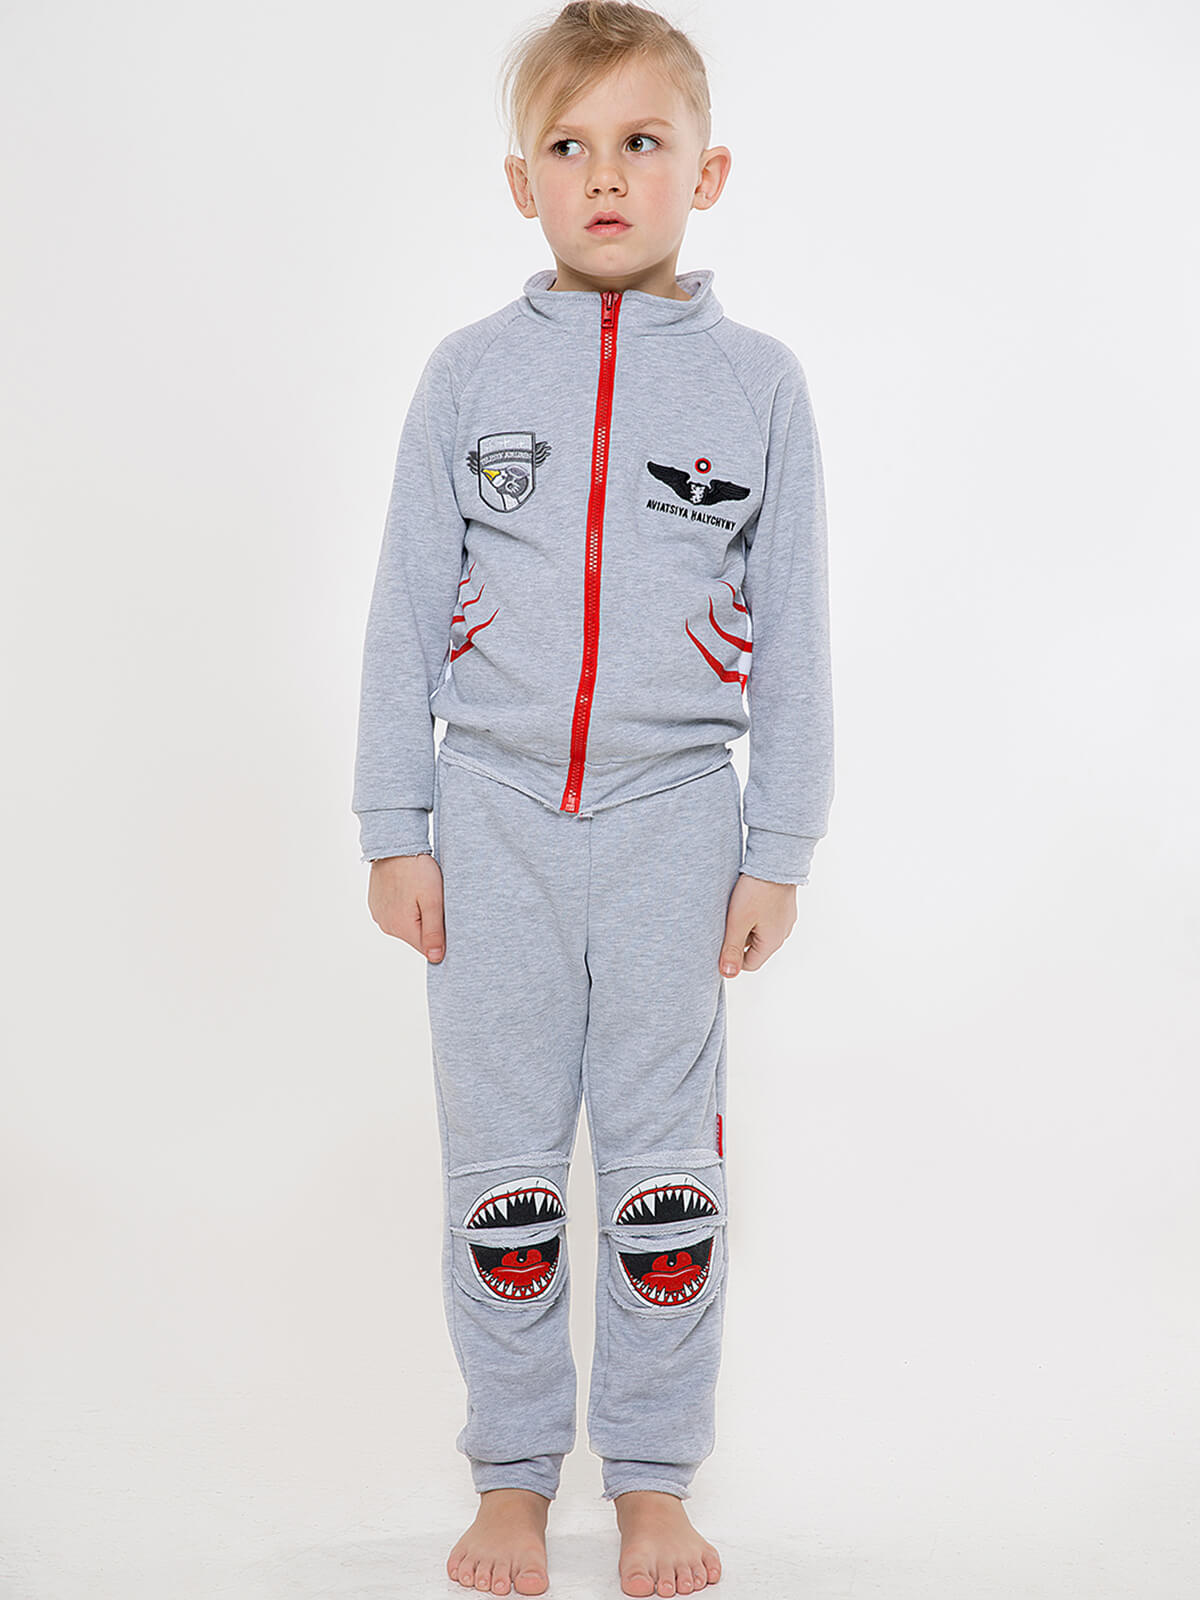 Kids Sport Suit Shark. Color gray.  Material: 79% cotton, 21% polyester Technique of prints applied: silkscreen printing.